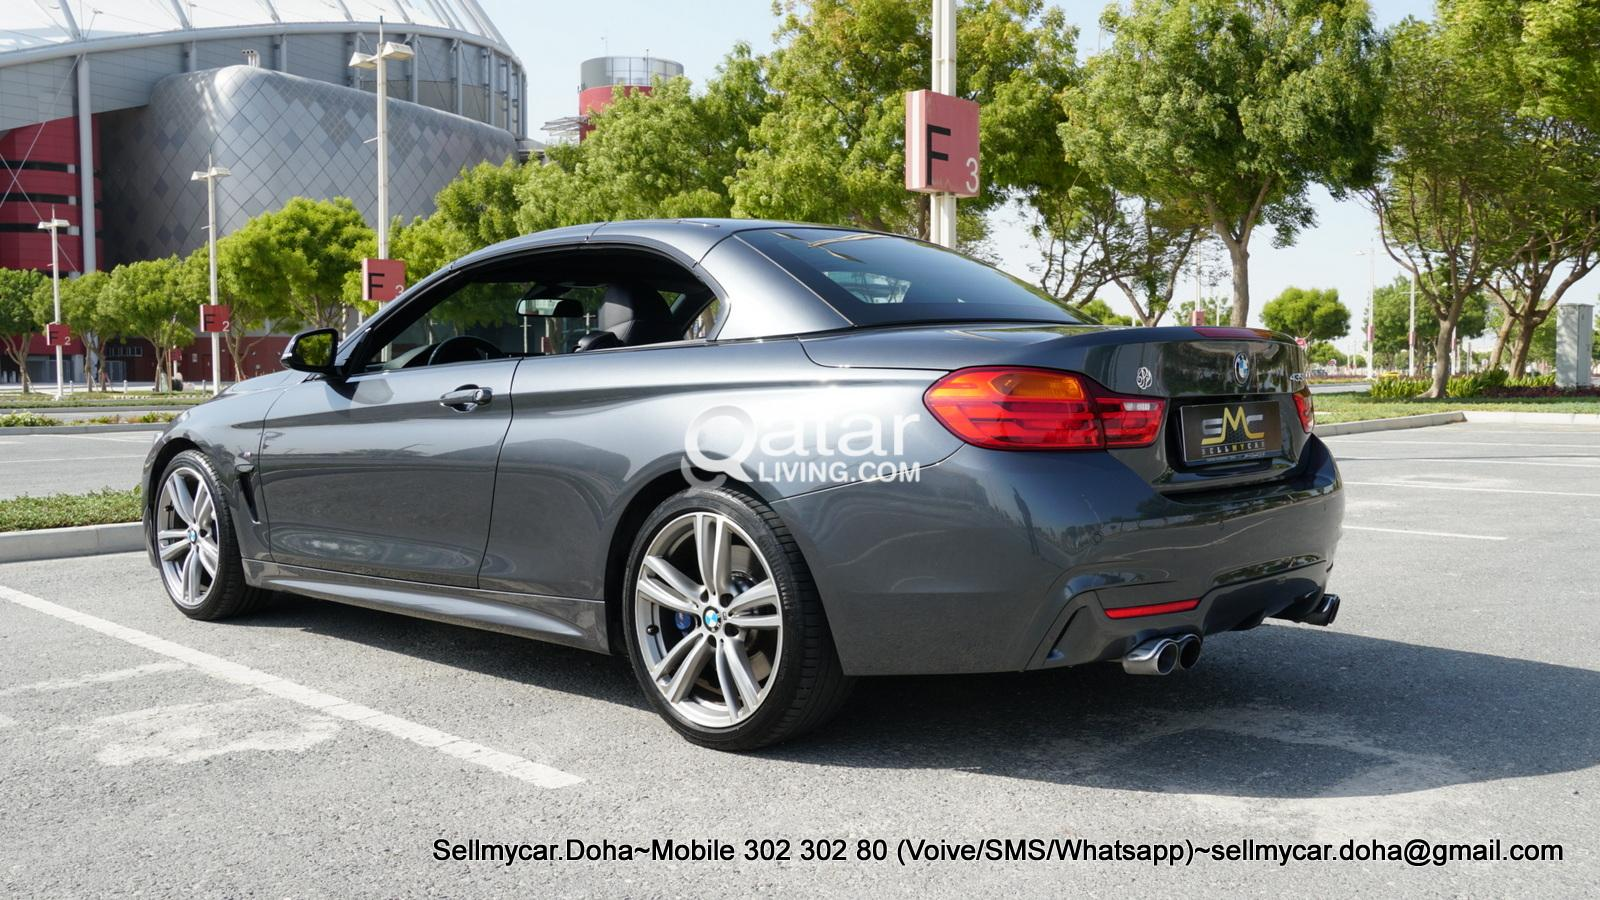 2015 BMW 435i M-SPORT PACKAGE Cabriolet (More Photos Available Upon Request)